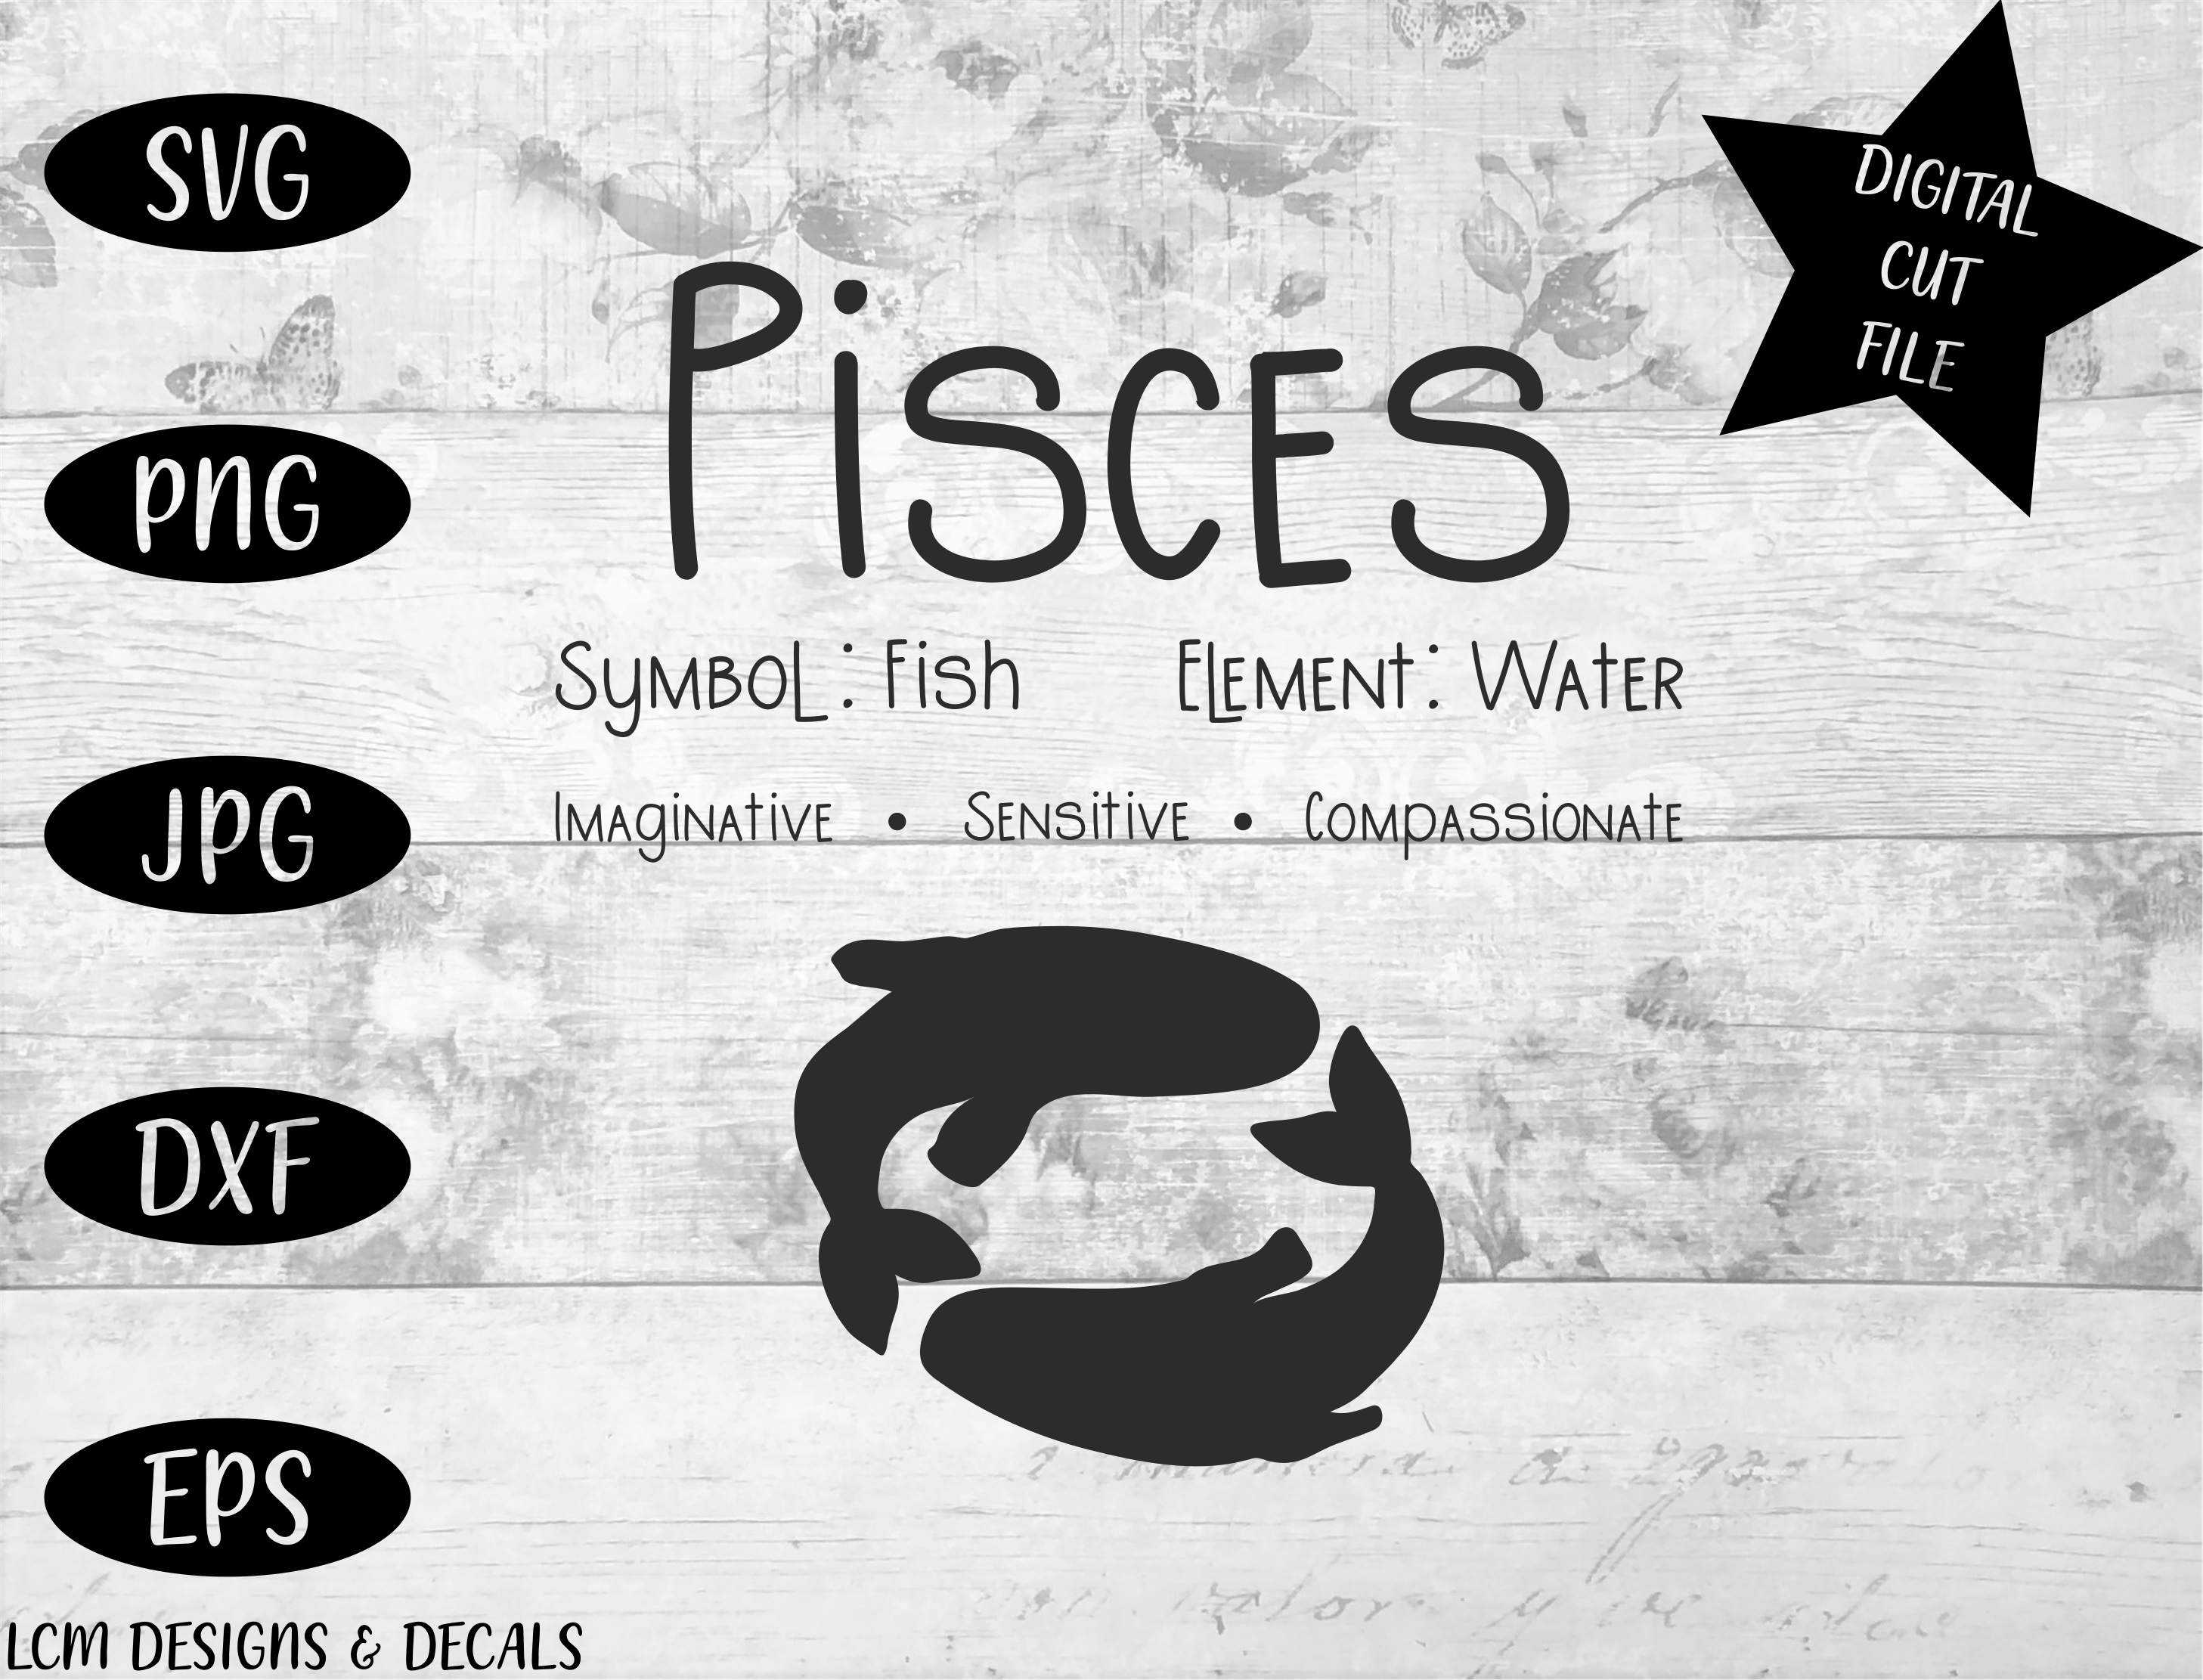 Download Free Pisces Zodiac Star Sign Astrology Graphic By Lcm Designs for Cricut Explore, Silhouette and other cutting machines.